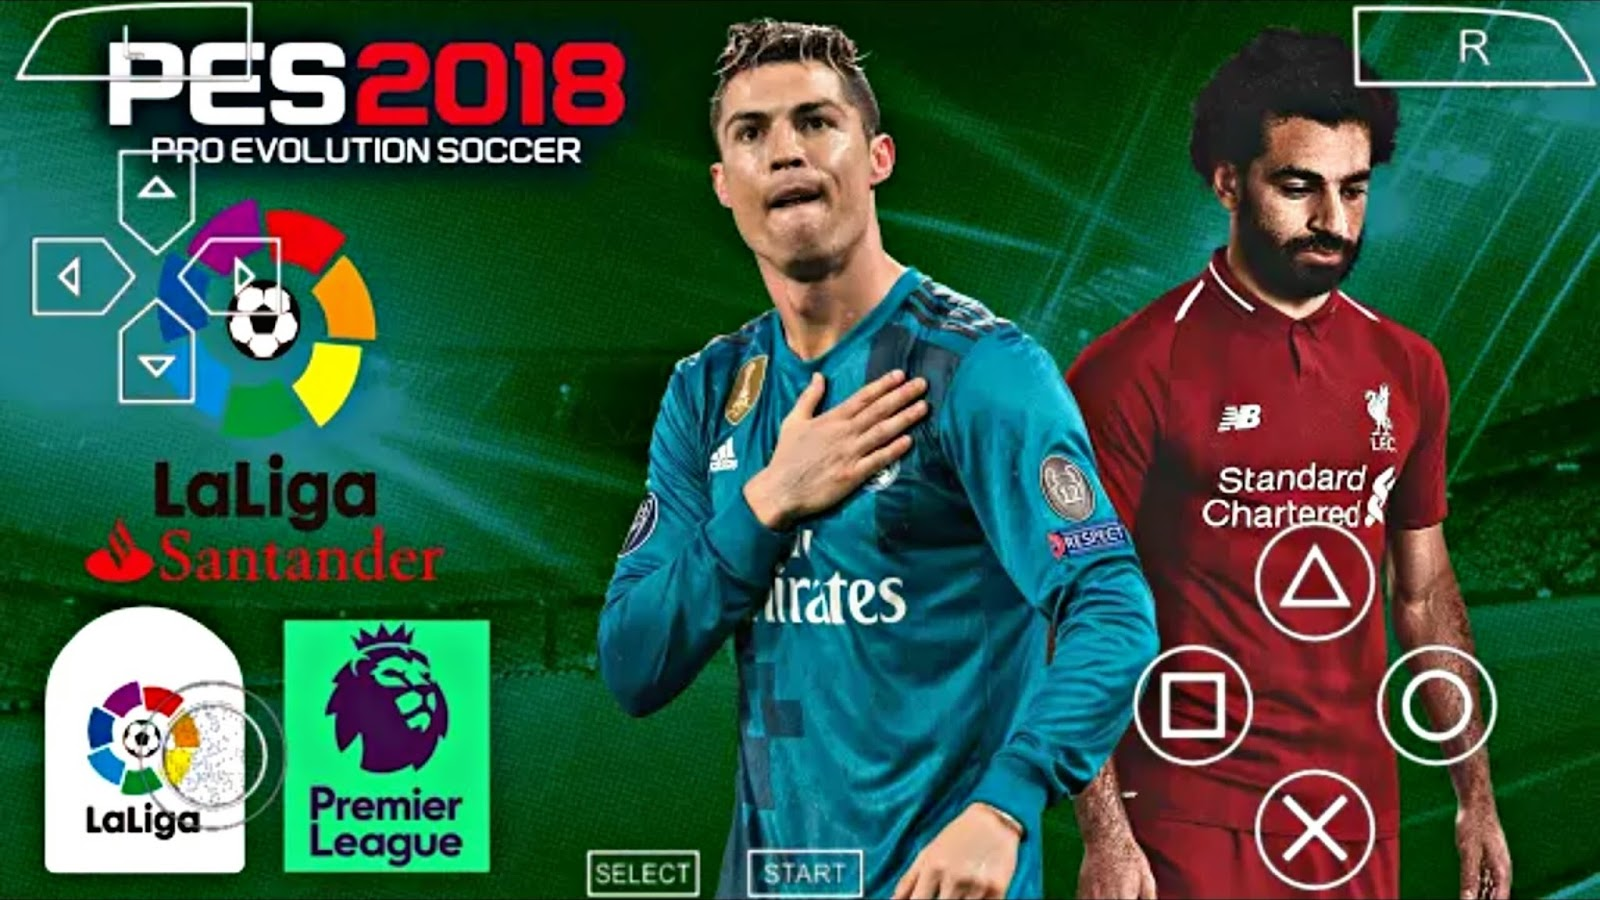 download game pes 2018 ppsspp pc